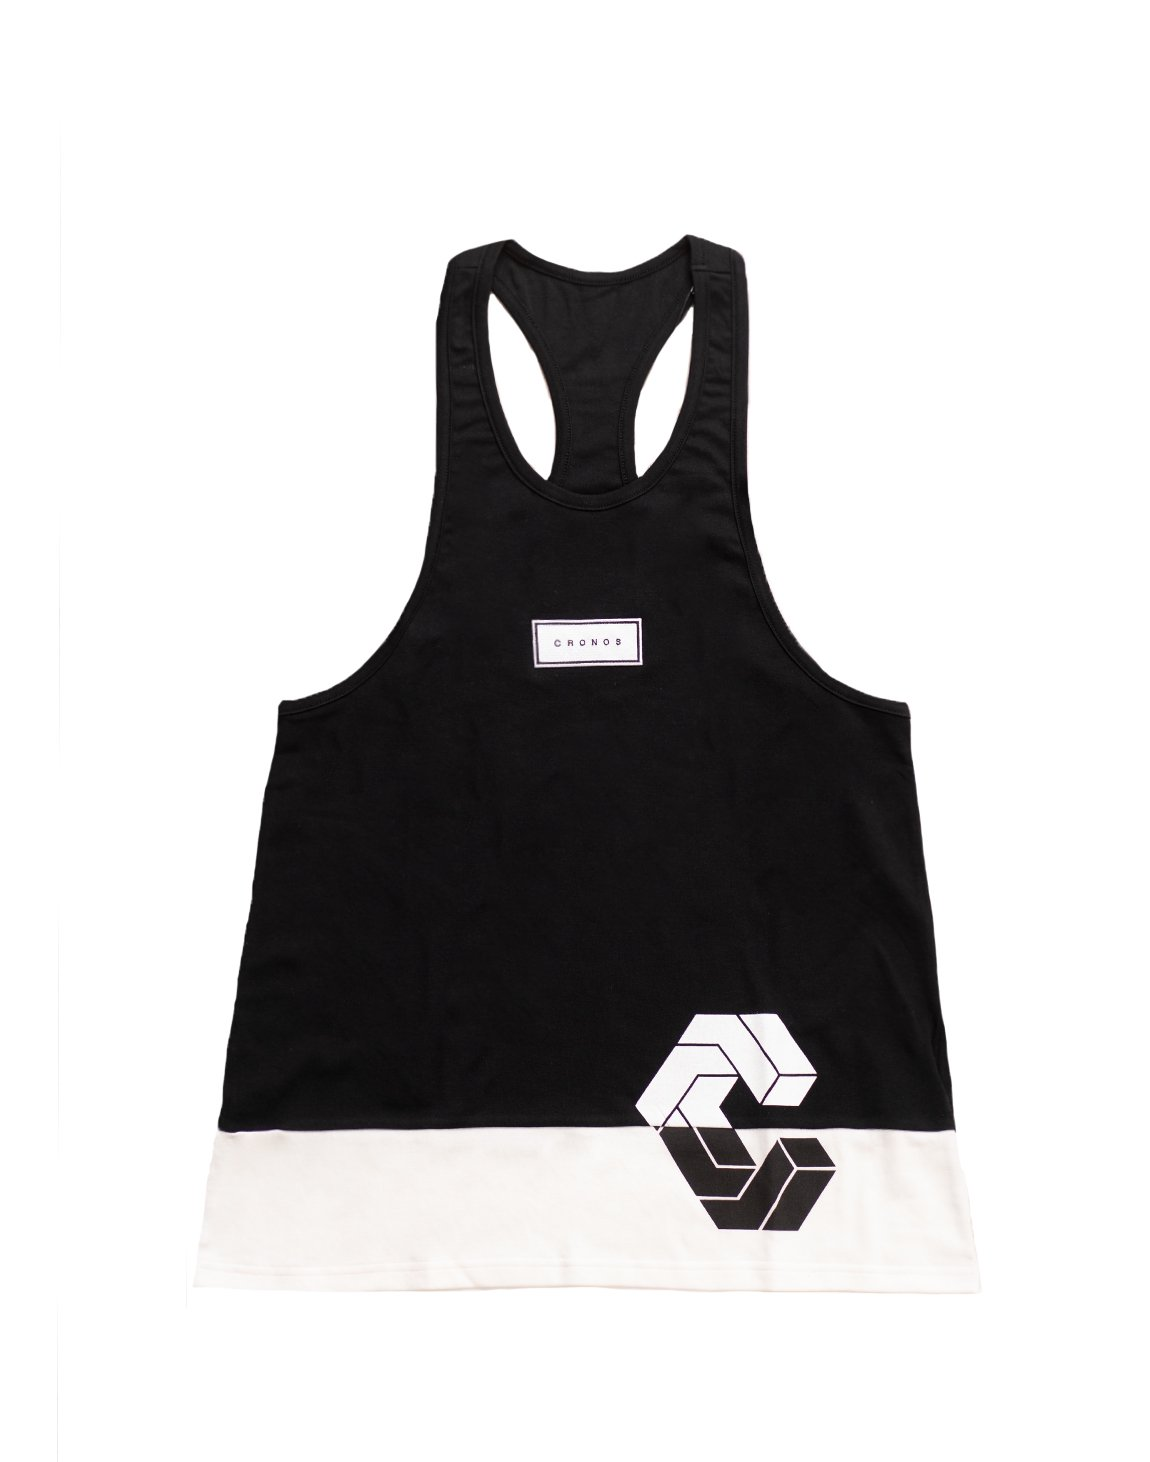 <img class='new_mark_img1' src='https://img.shop-pro.jp/img/new/icons55.gif' style='border:none;display:inline;margin:0px;padding:0px;width:auto;' />CRONOS BOX MODE SIDE LOGO TANK TOP【BLACK×WHITE】